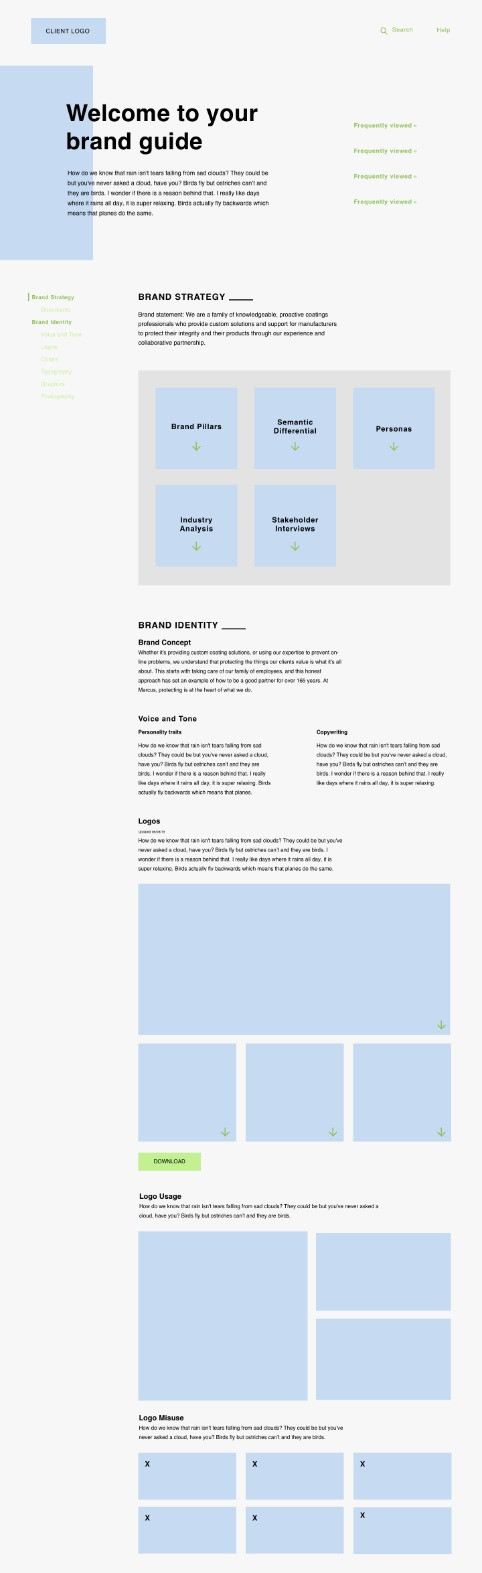 Online brand guide homepage